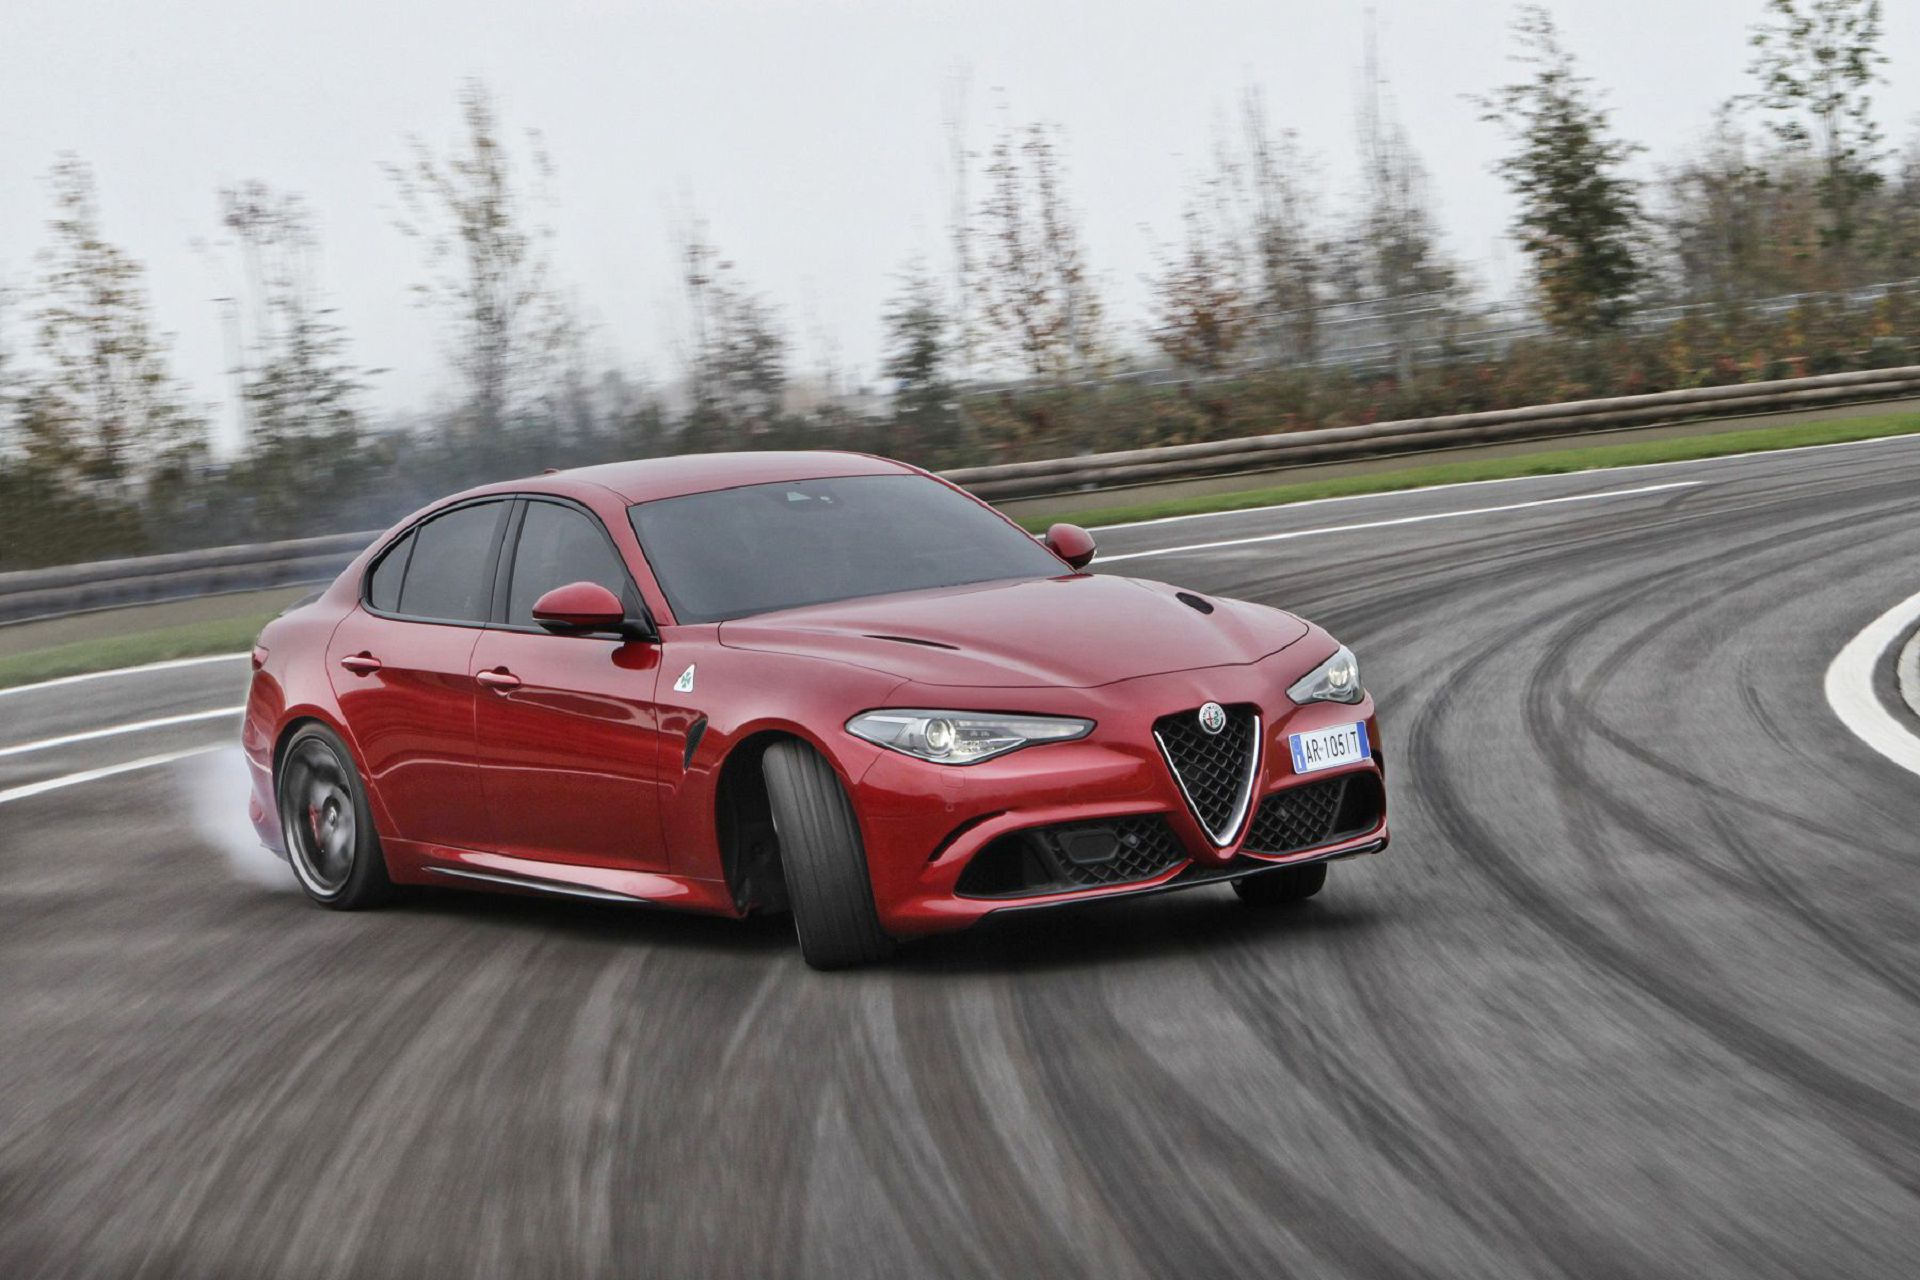 Alfa Romeo Giulia High Quality Wallpapers